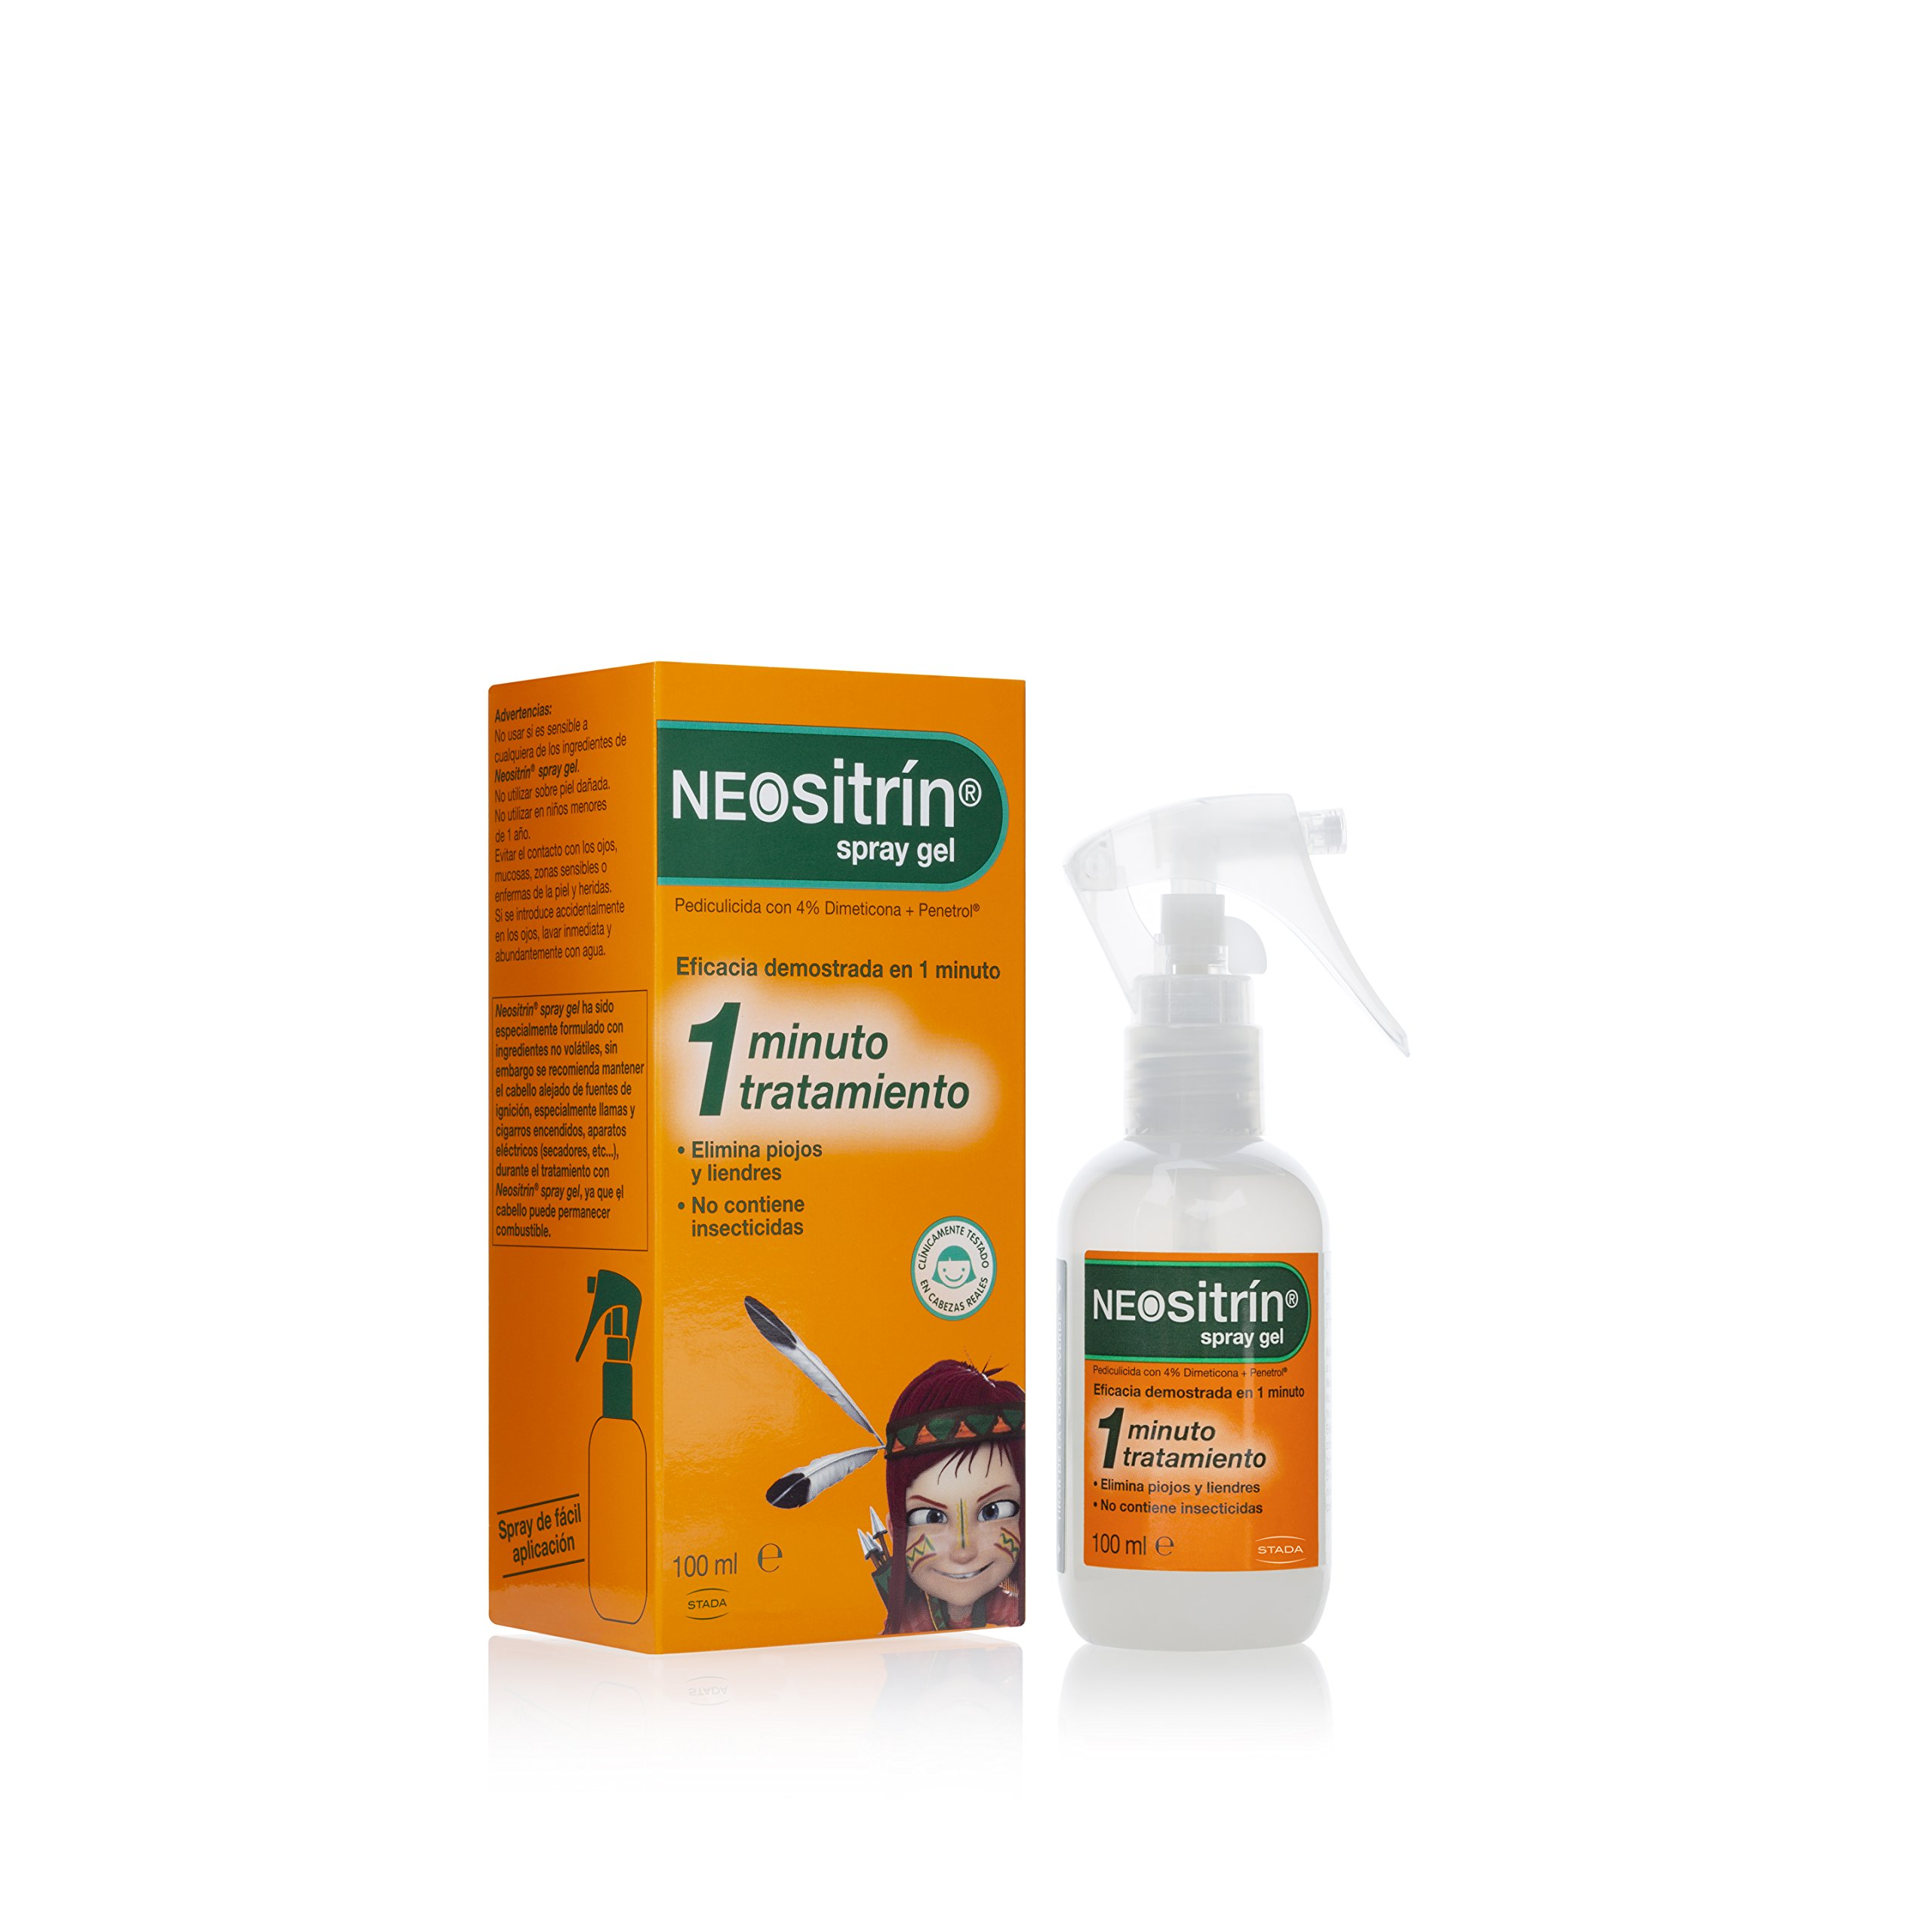 Neositrín - Spray Gel, Tratamiento para Eliminar Piojos y Liendres - [ 100ml ] product